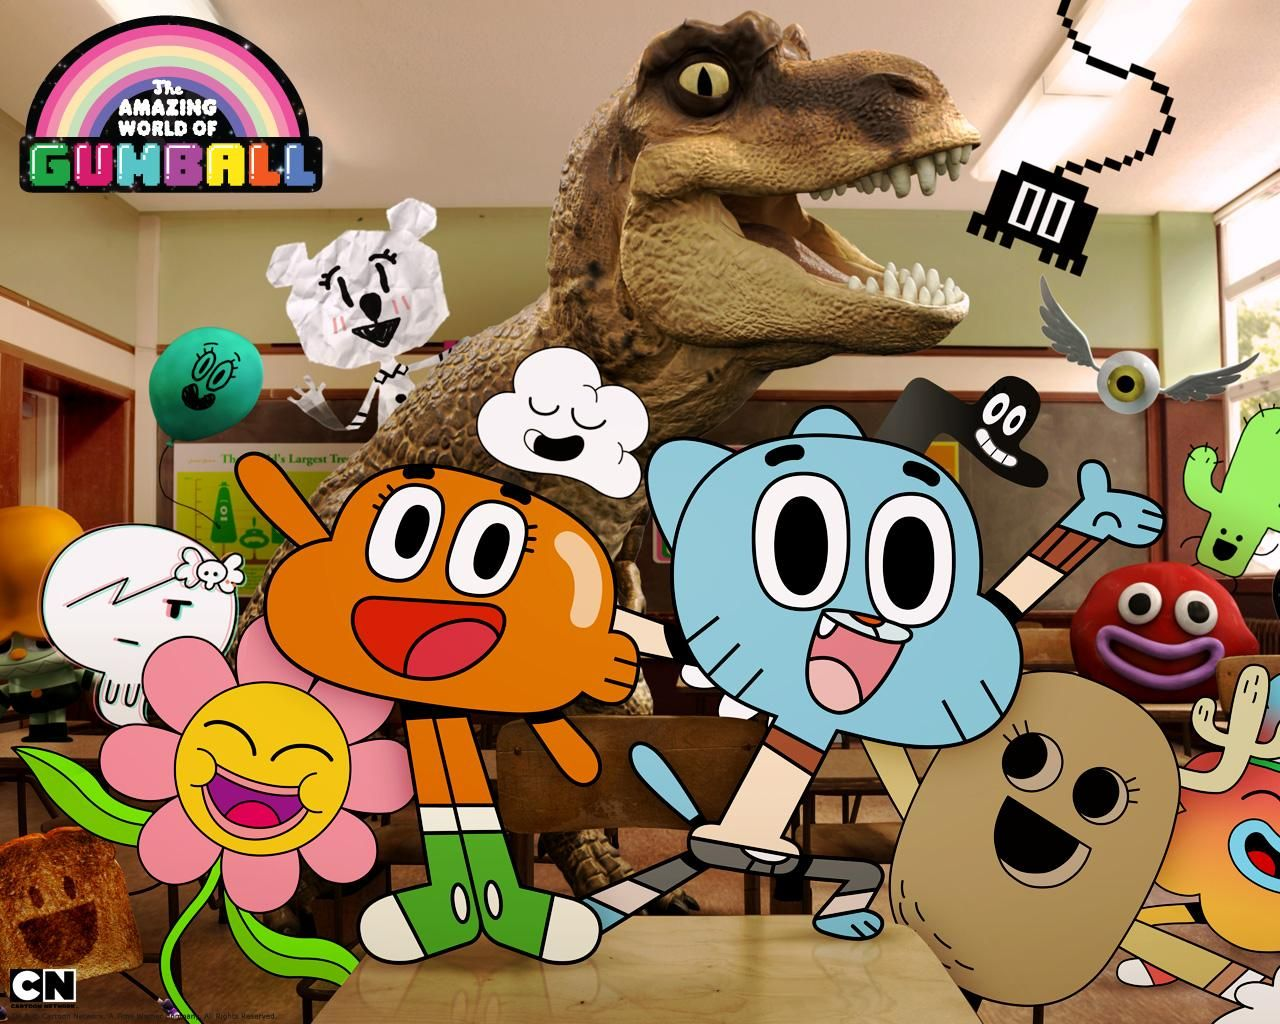 Gumball The Amazing World Of Gumball World Of Gumball Cartoon Network Characters